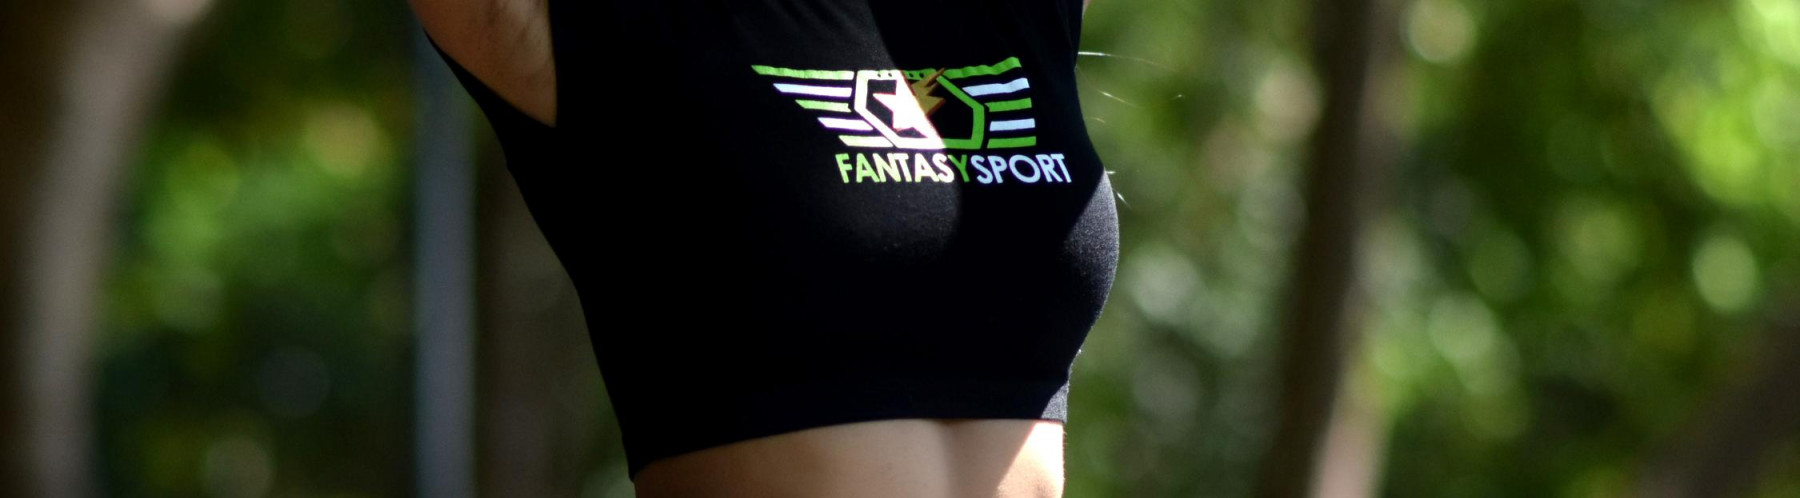 How to Improve Your Fantasy Sports